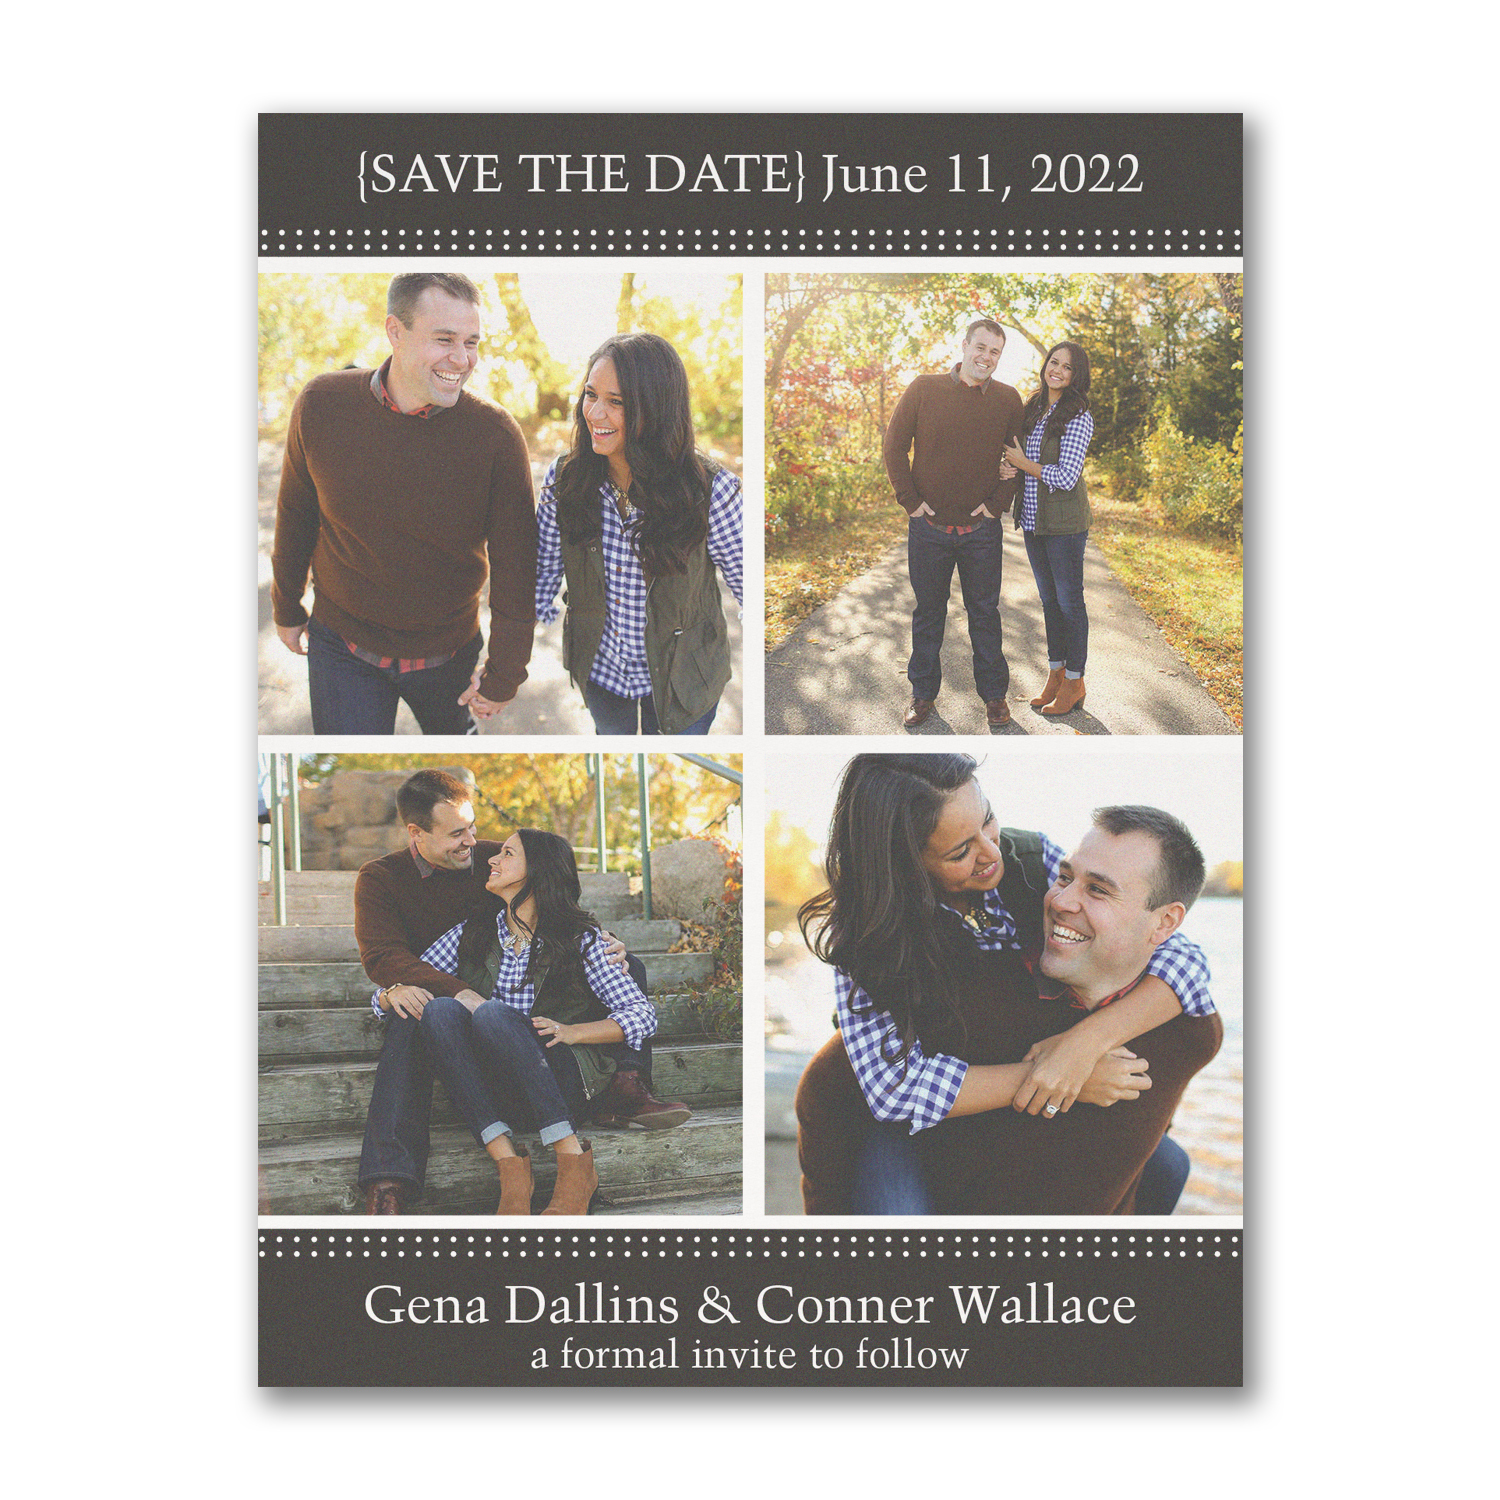 storybook romance photo save the date carlson craft